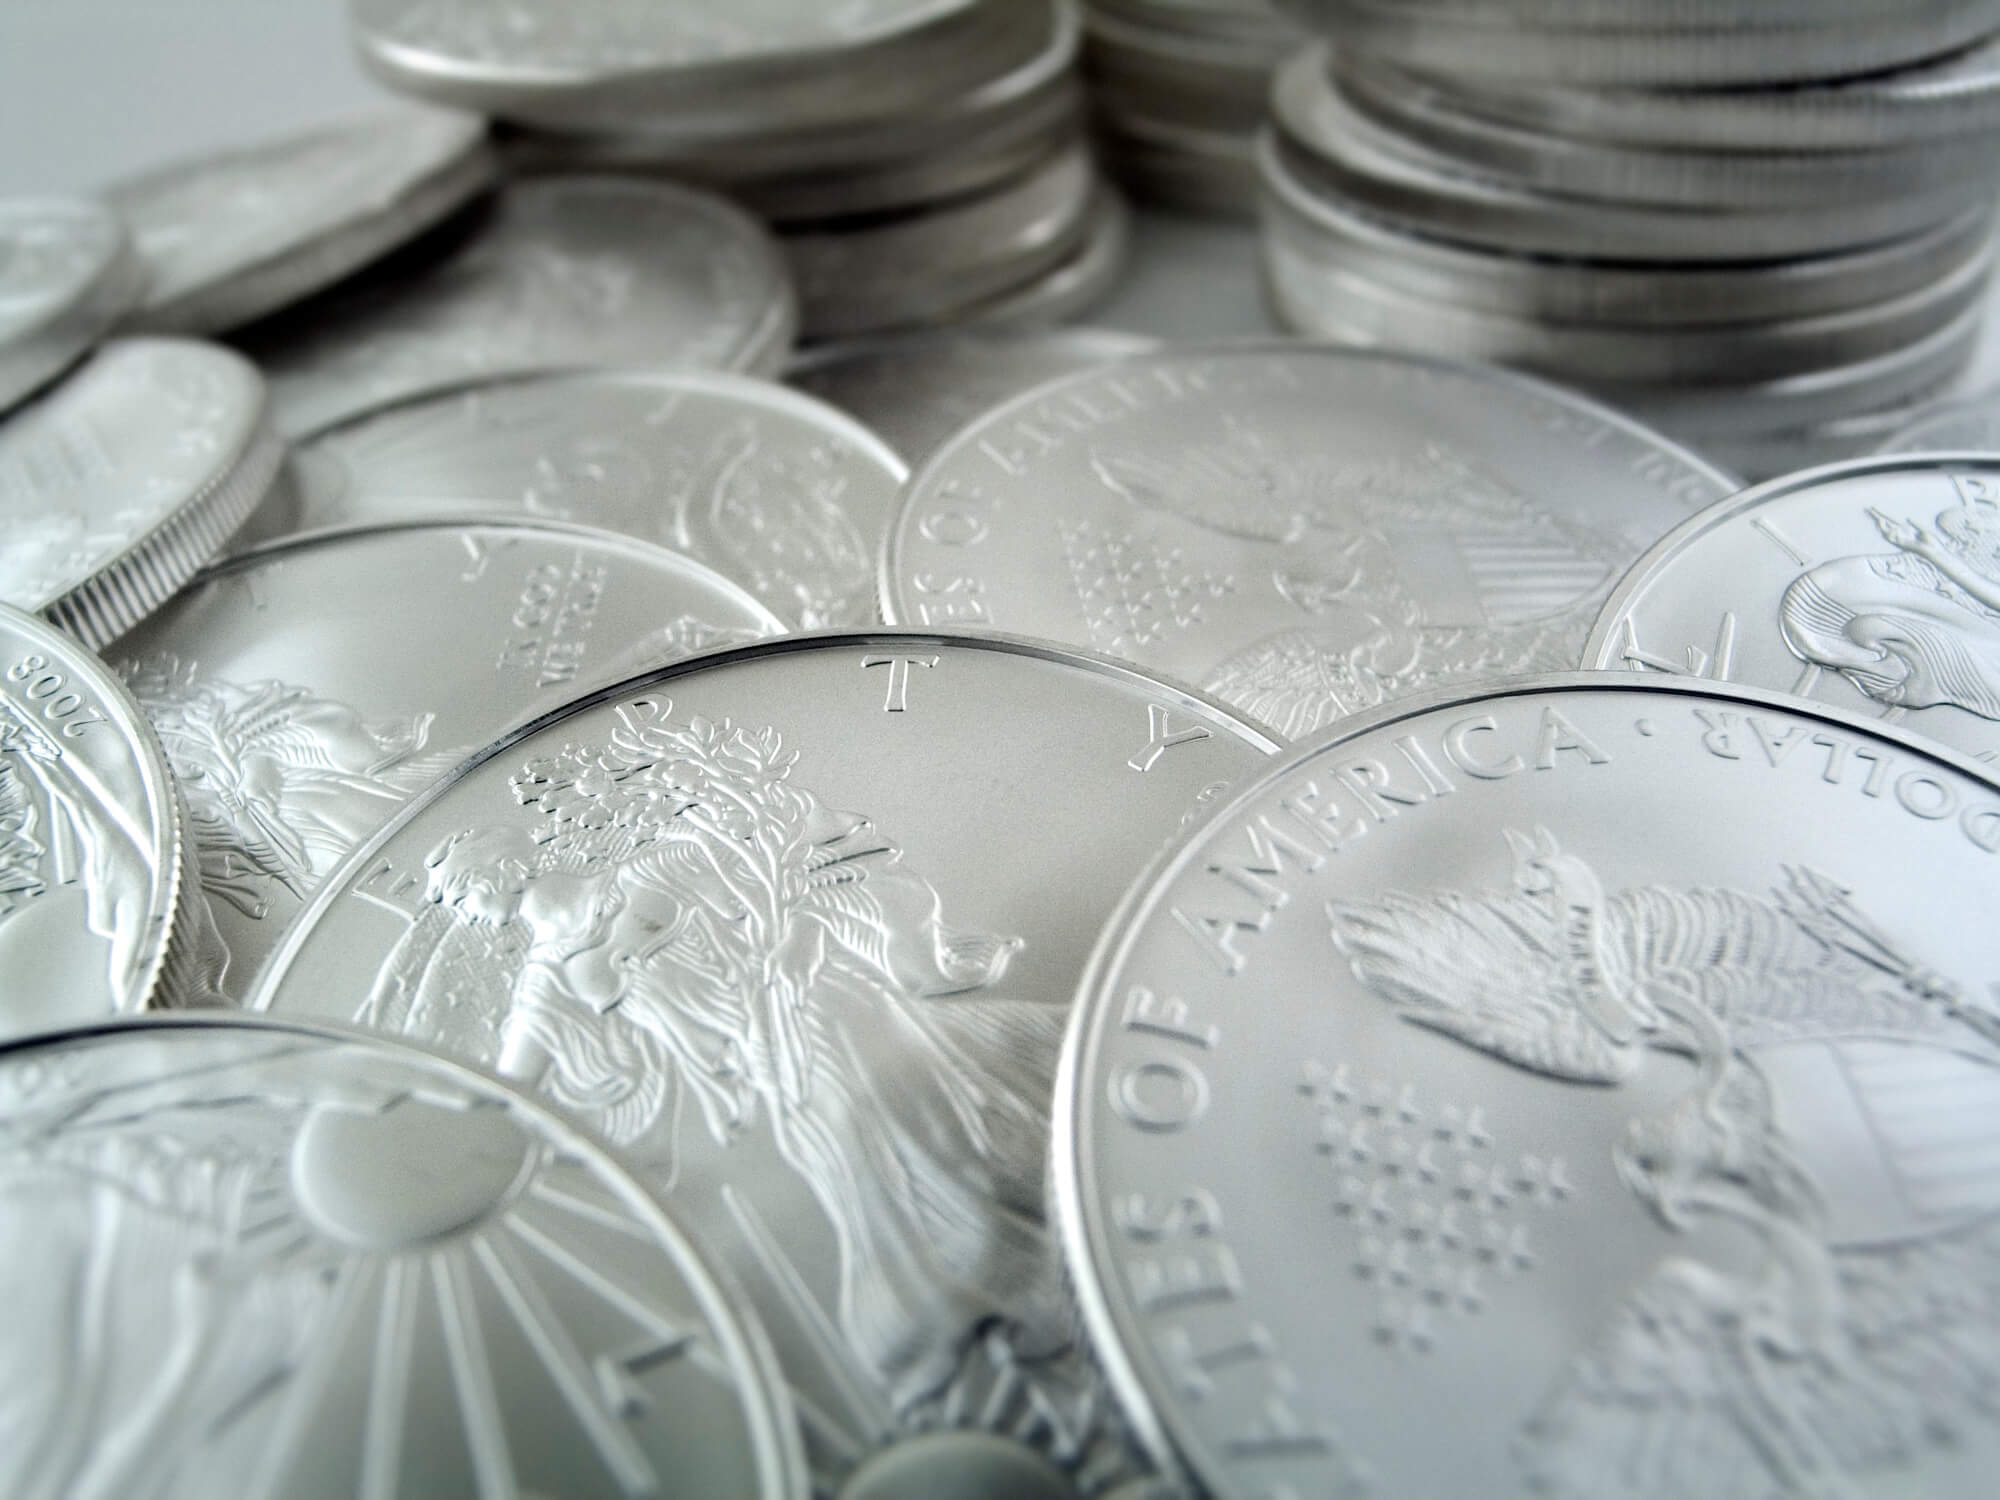 A stack of American Silver Eagle Coins in west palm beach